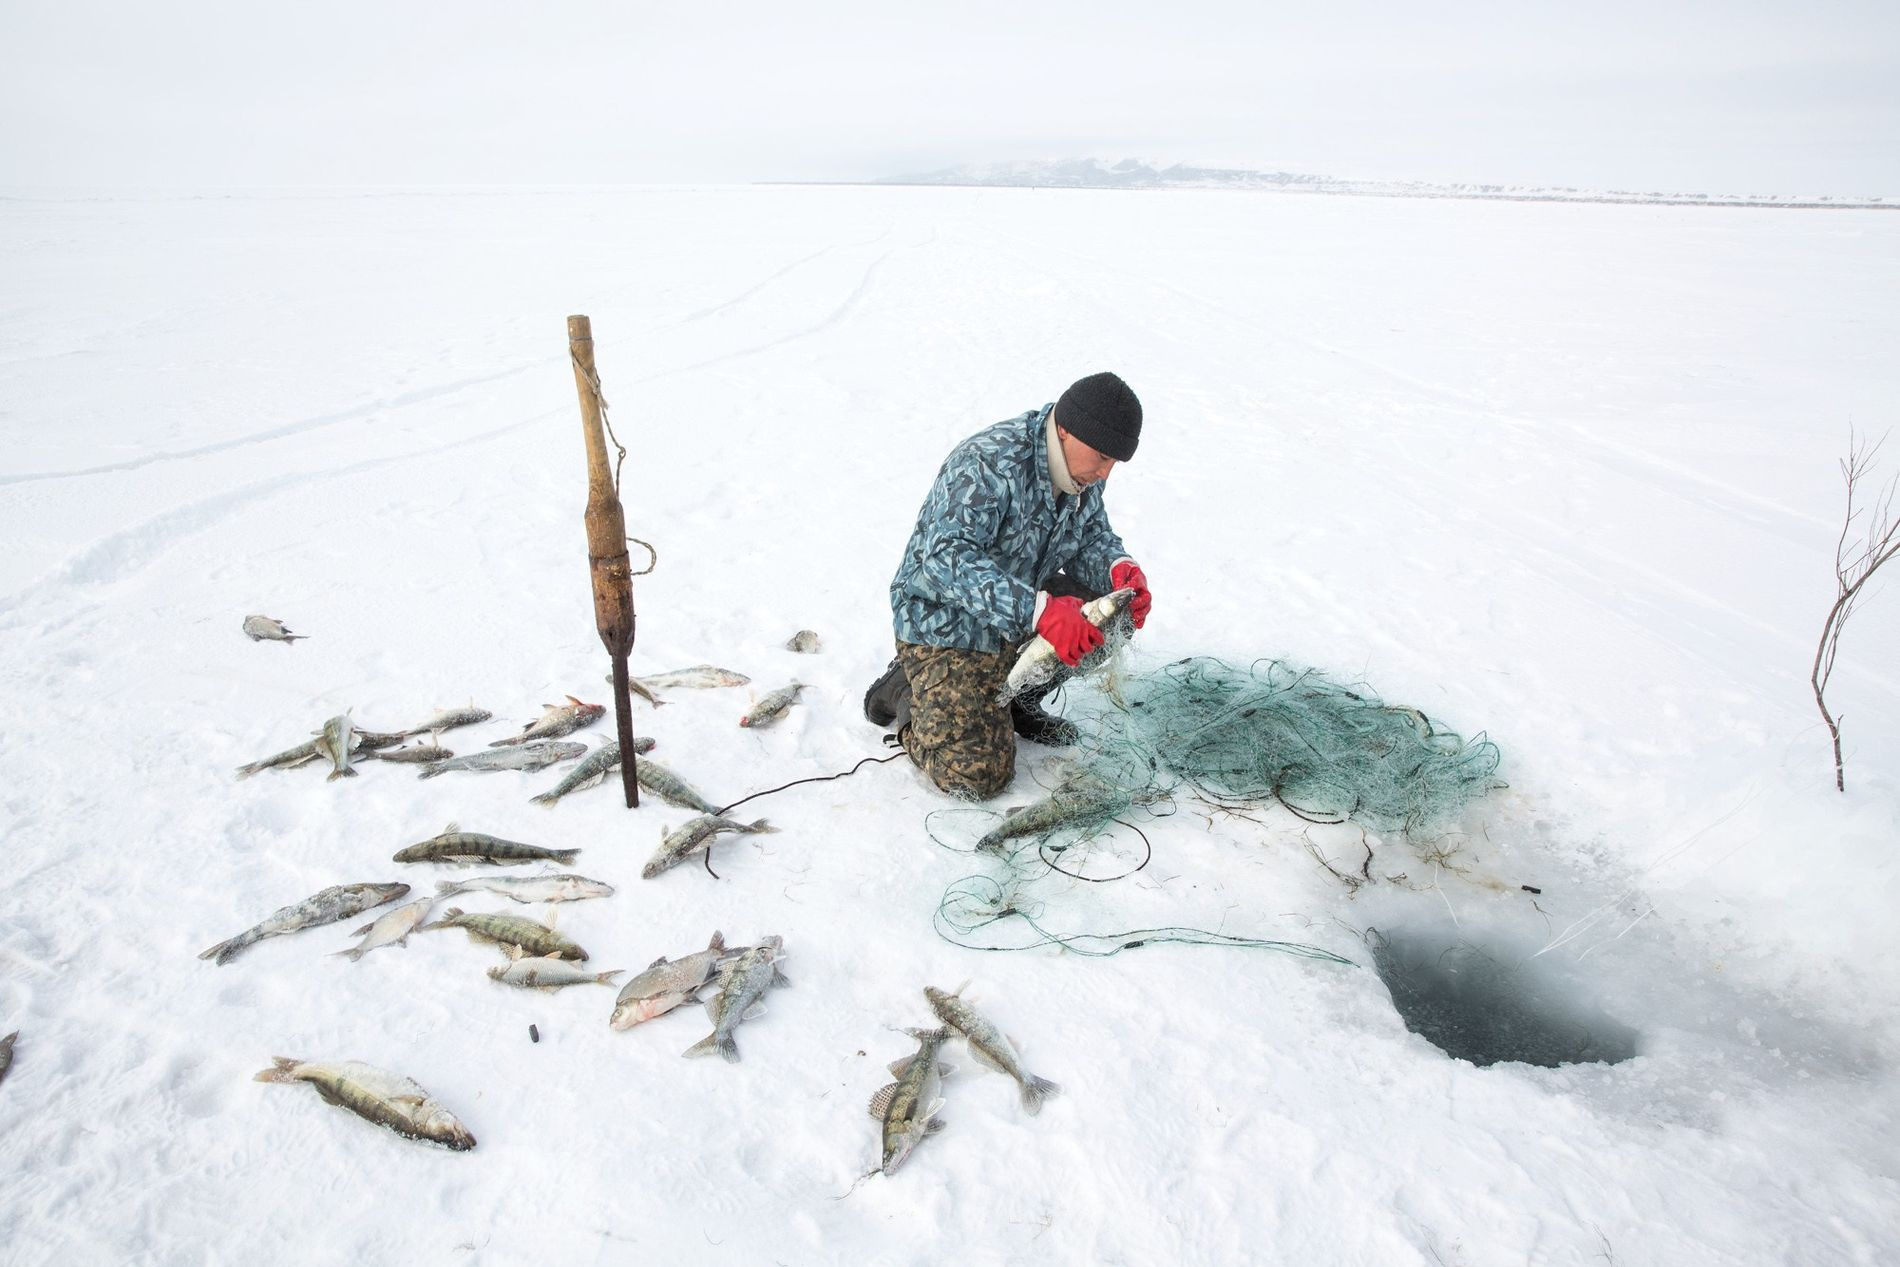 Omirserik Ibragimov, 25, uses a net to ice fish on the frozen surface of the North ...